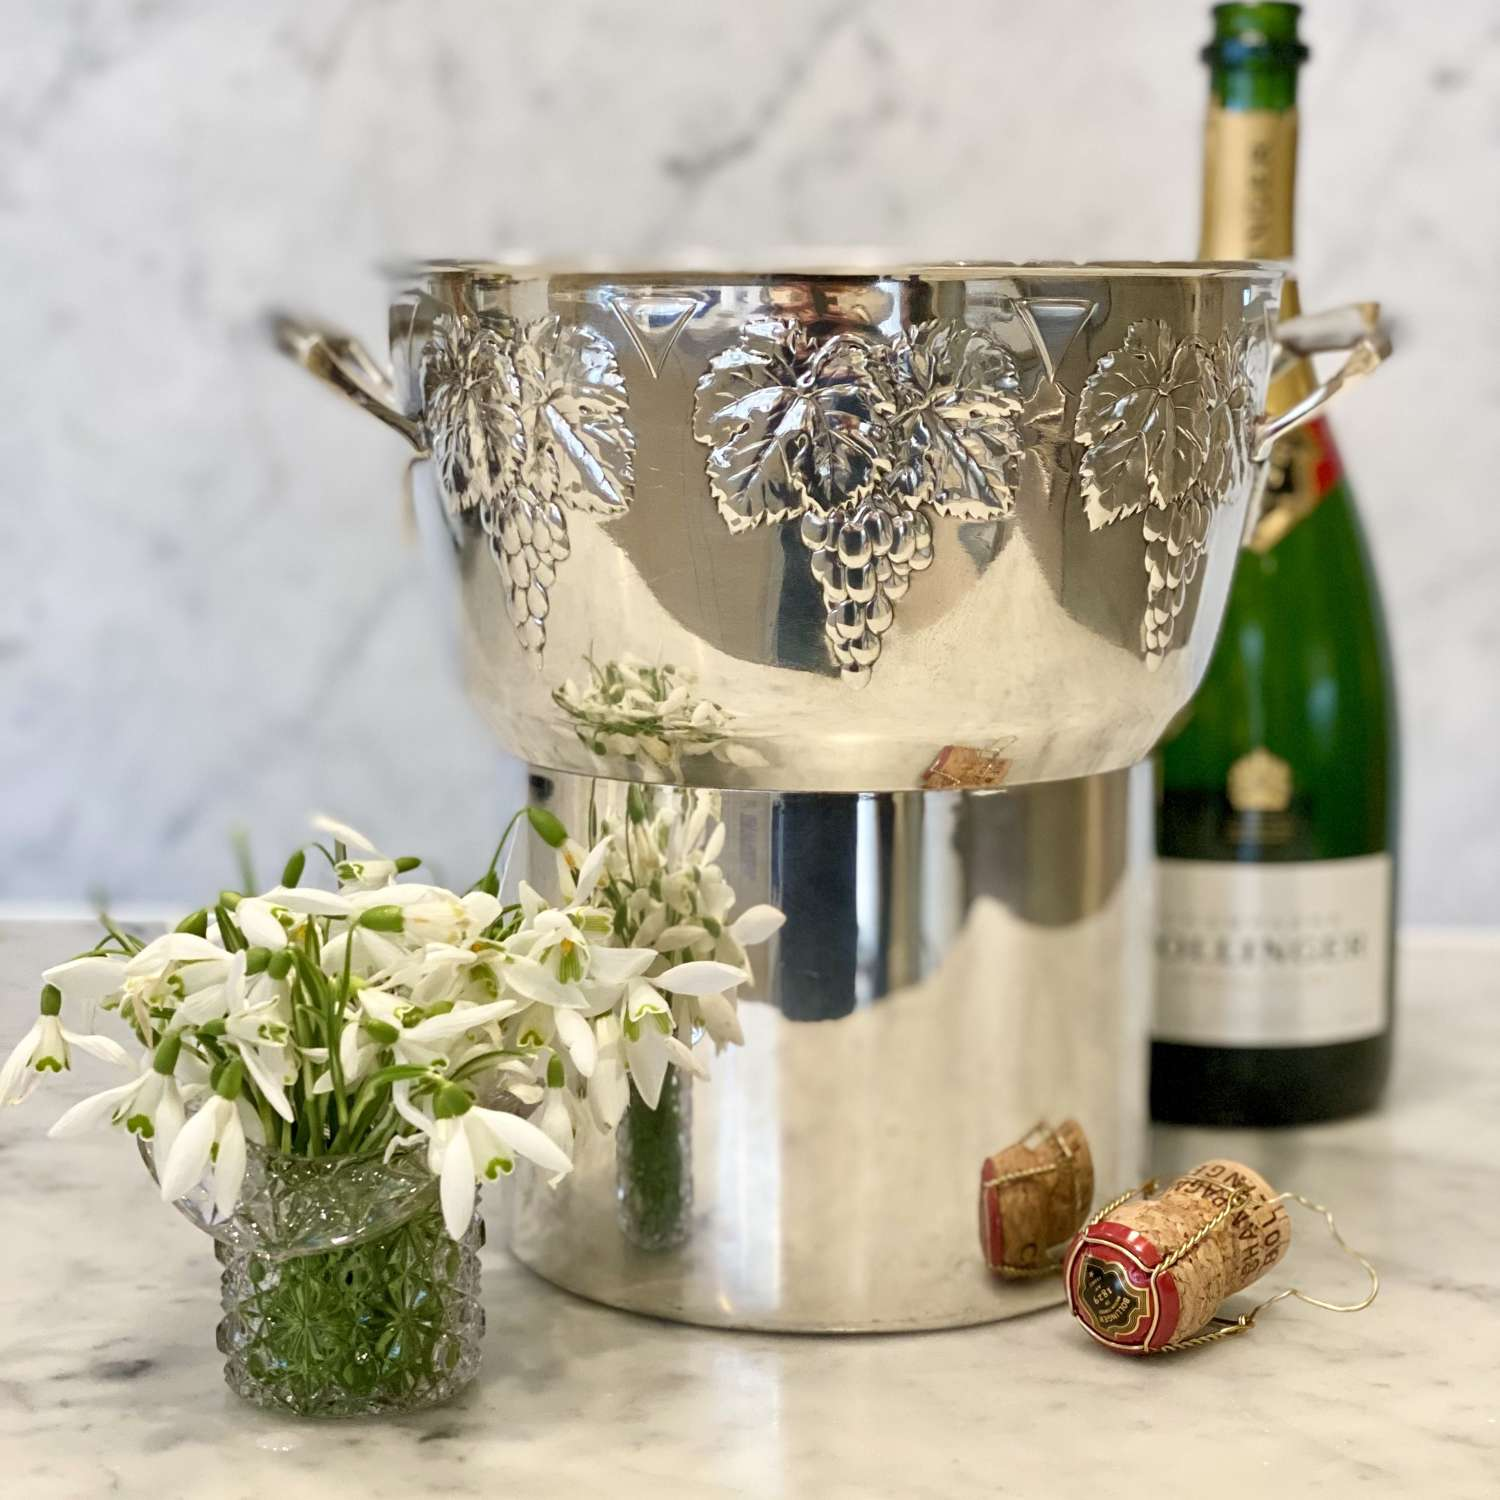 Mid 20th Century French silver plated champagne wine bucket cooler